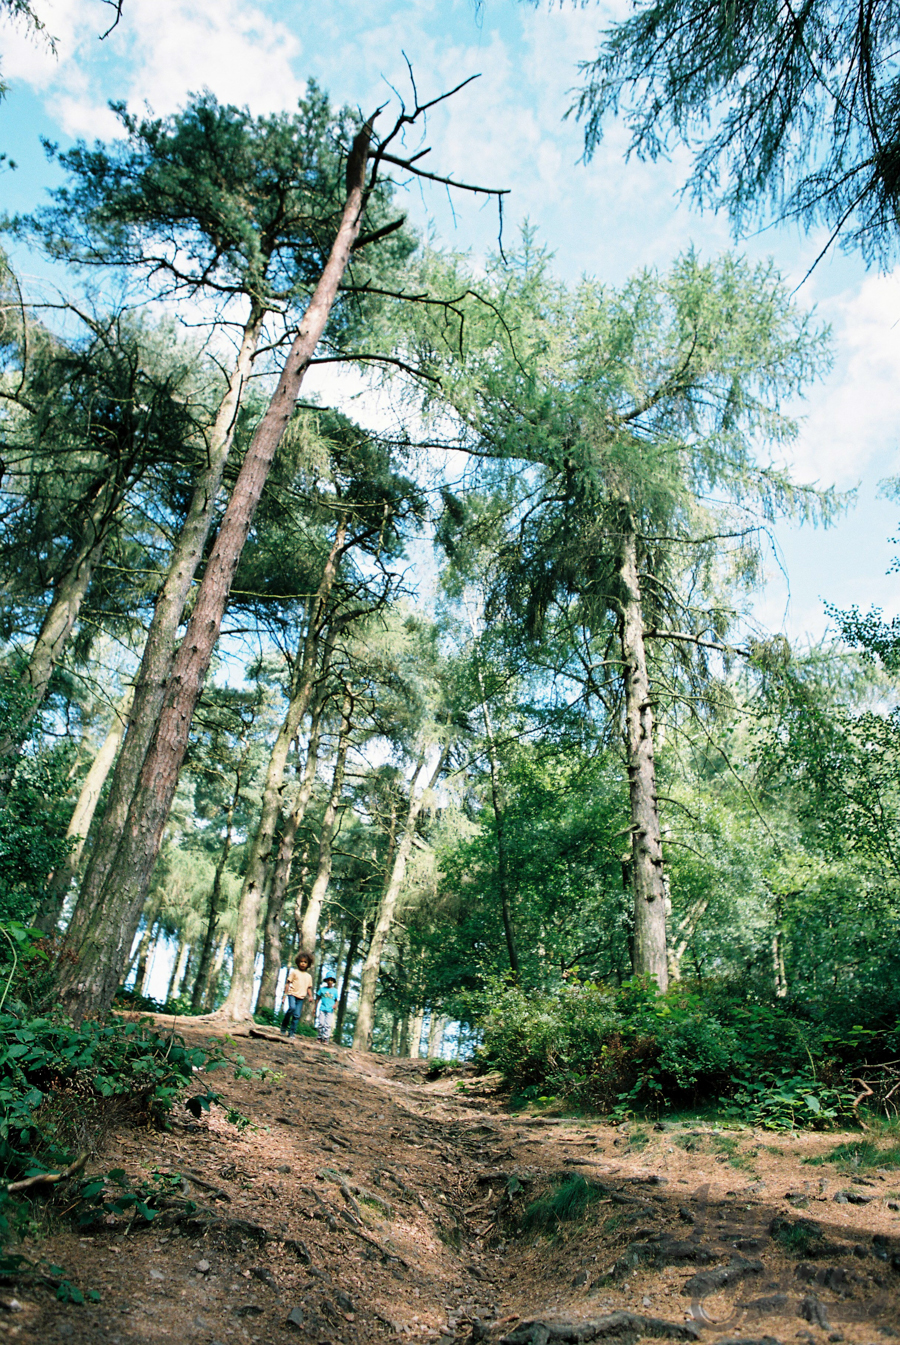 The Smalls, Lickey Hills, August 2014 - Film P160